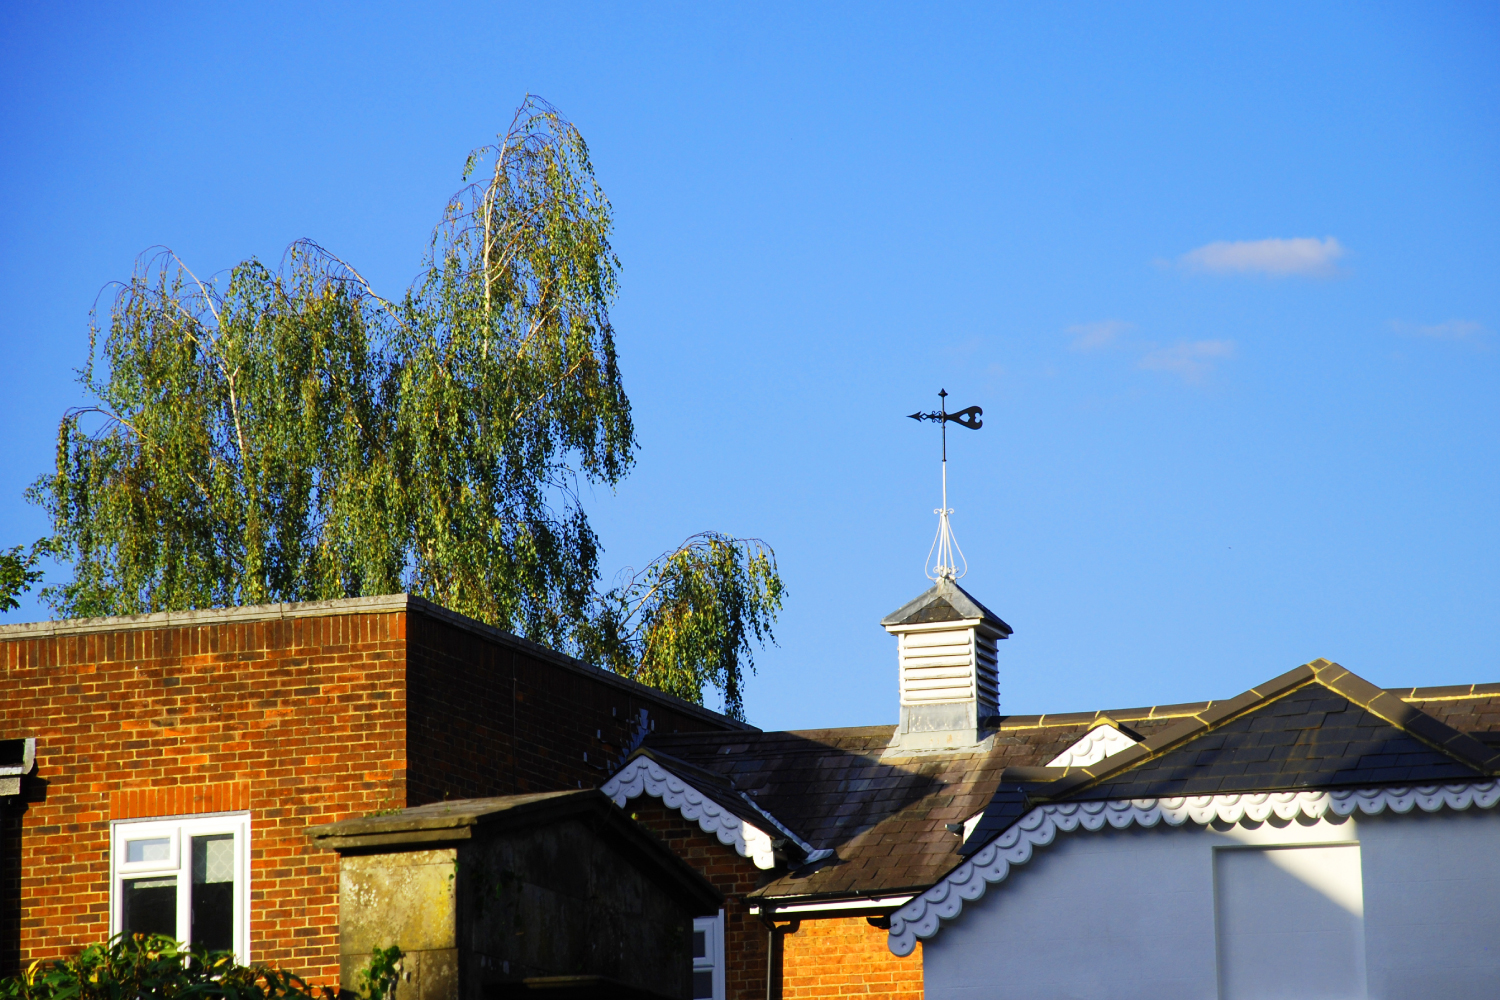 Worth Corner Business Centre - Weather Vane at Sunset